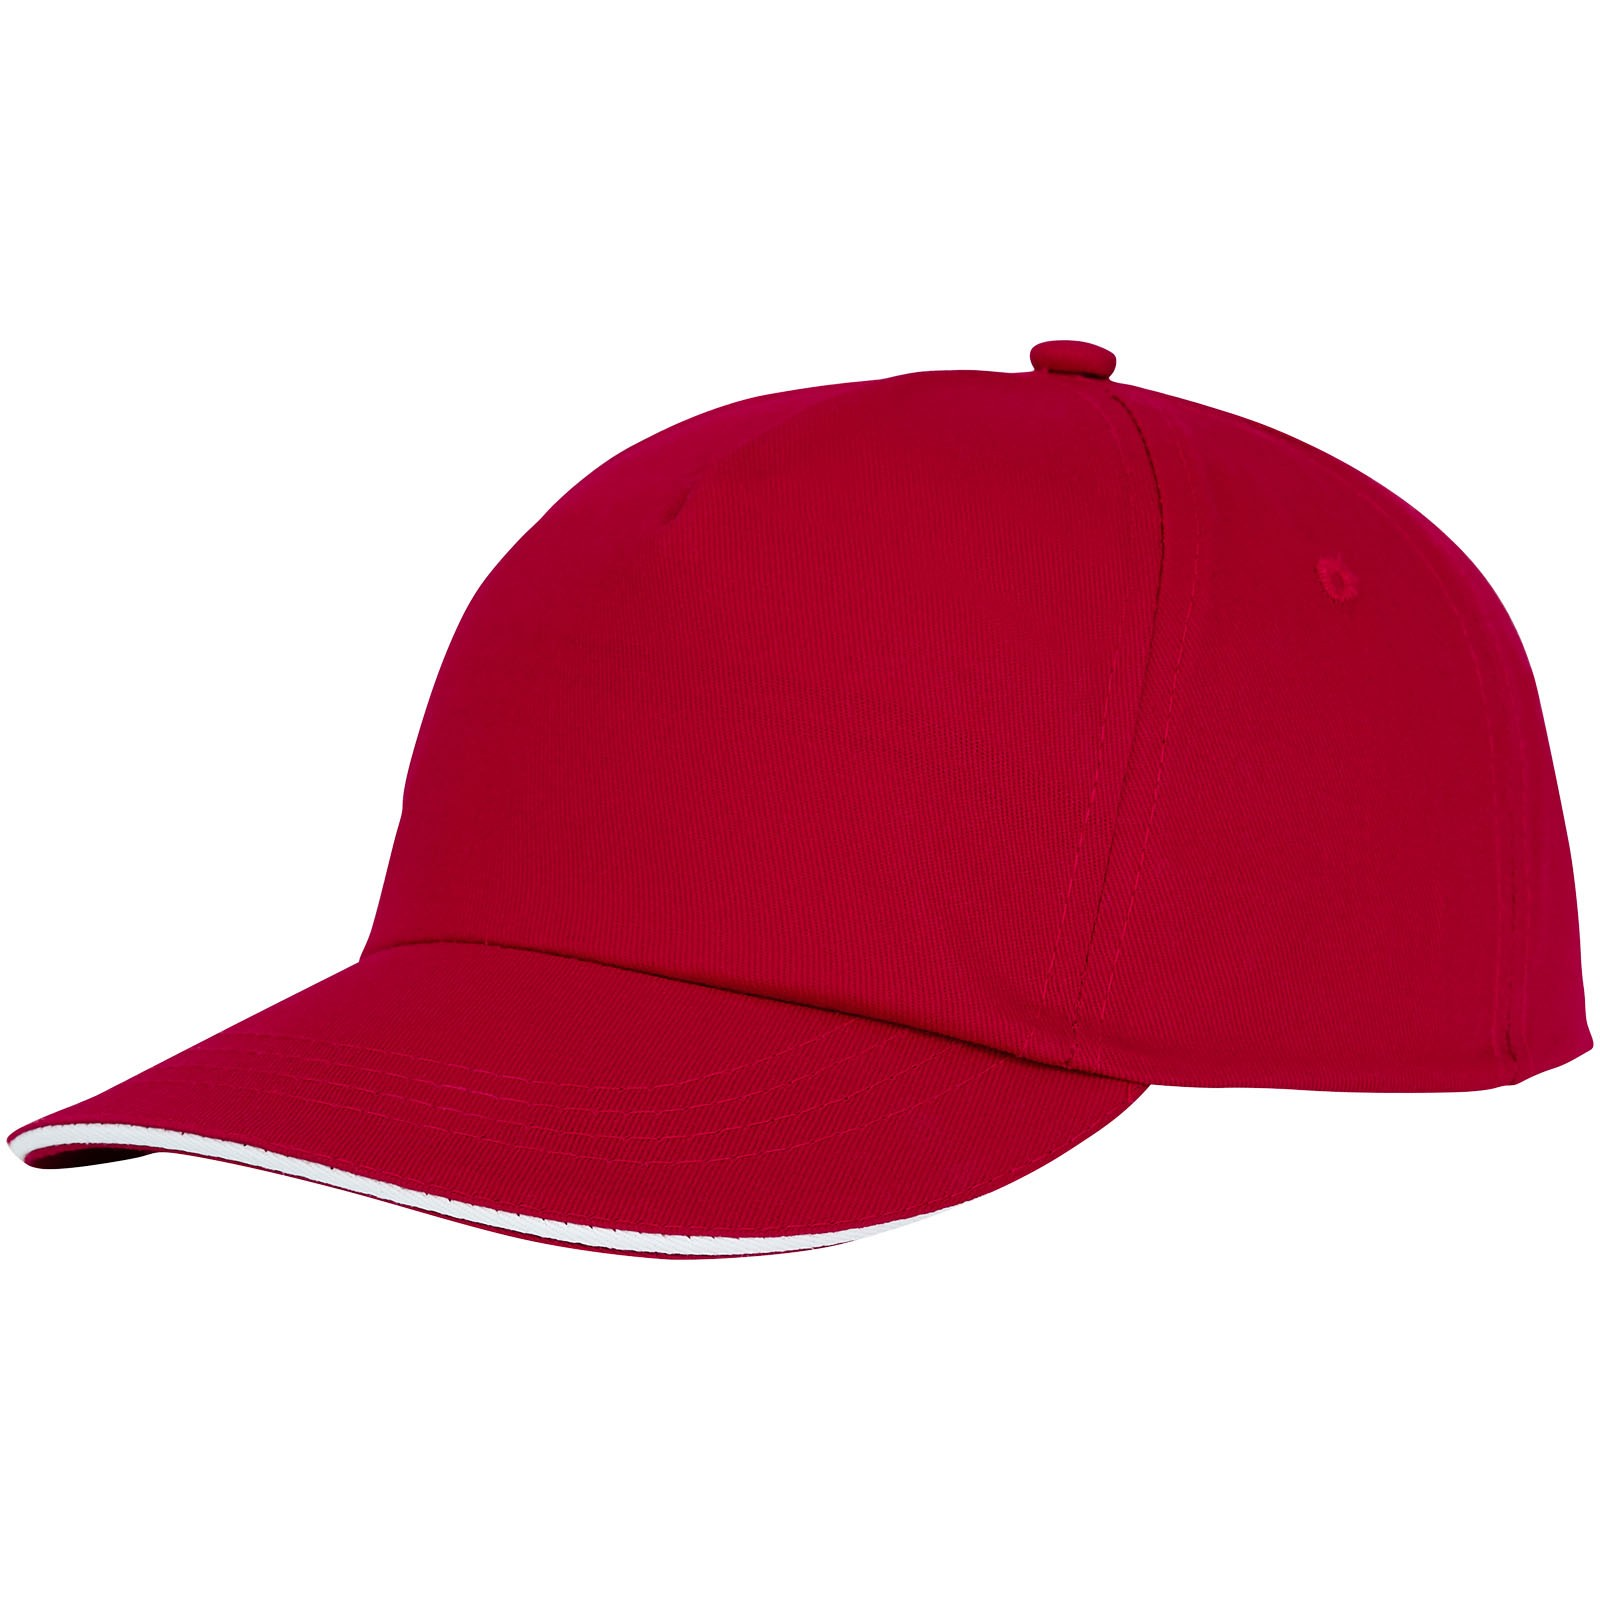 Styx 5 panel sandwich cap - Red